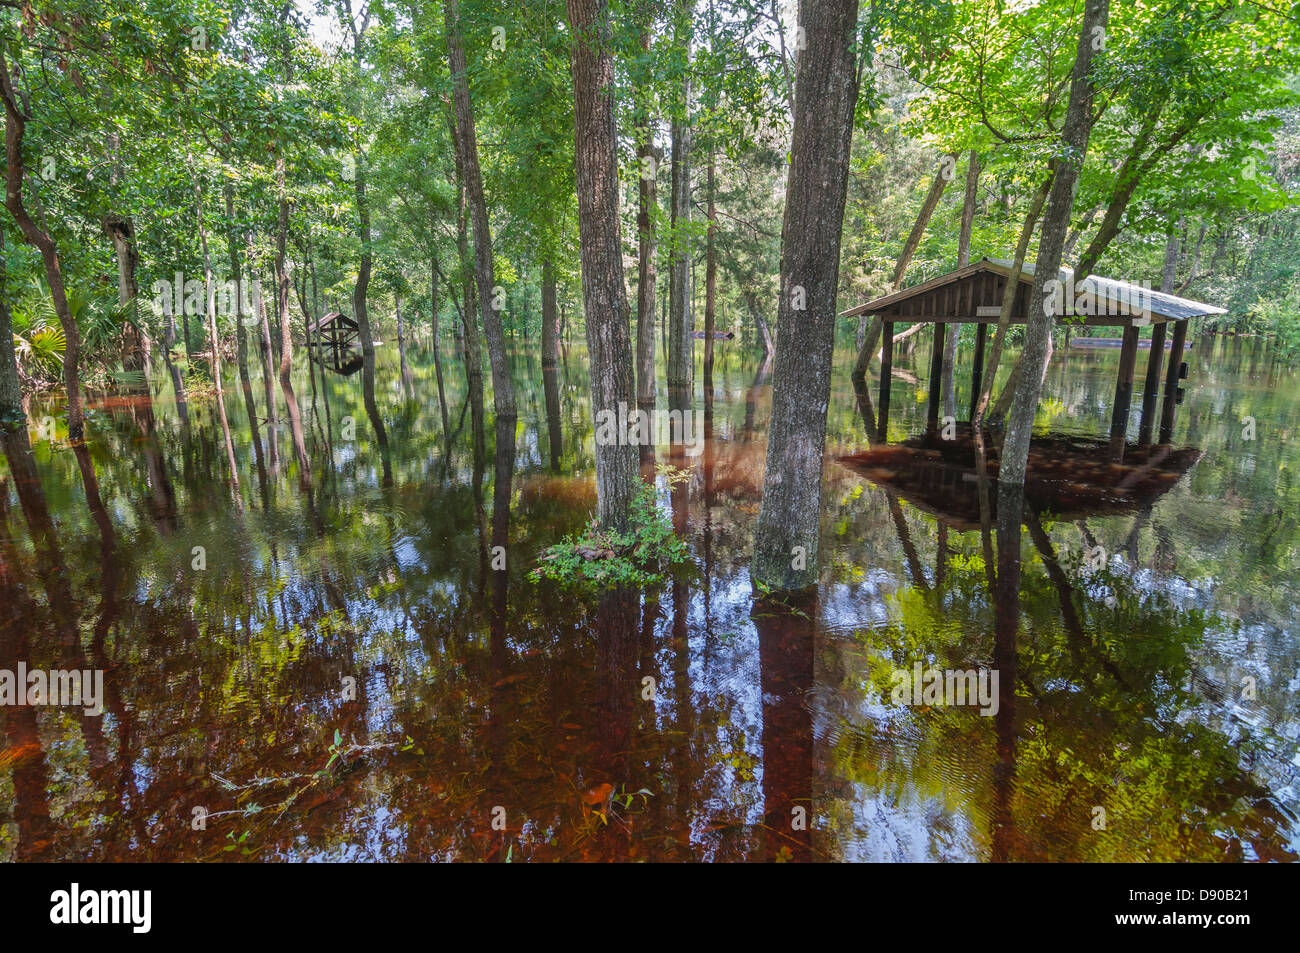 Flooding at Oleno State Park after Tropical Storm Debby hit North Central Florida 6-12. - Stock Image